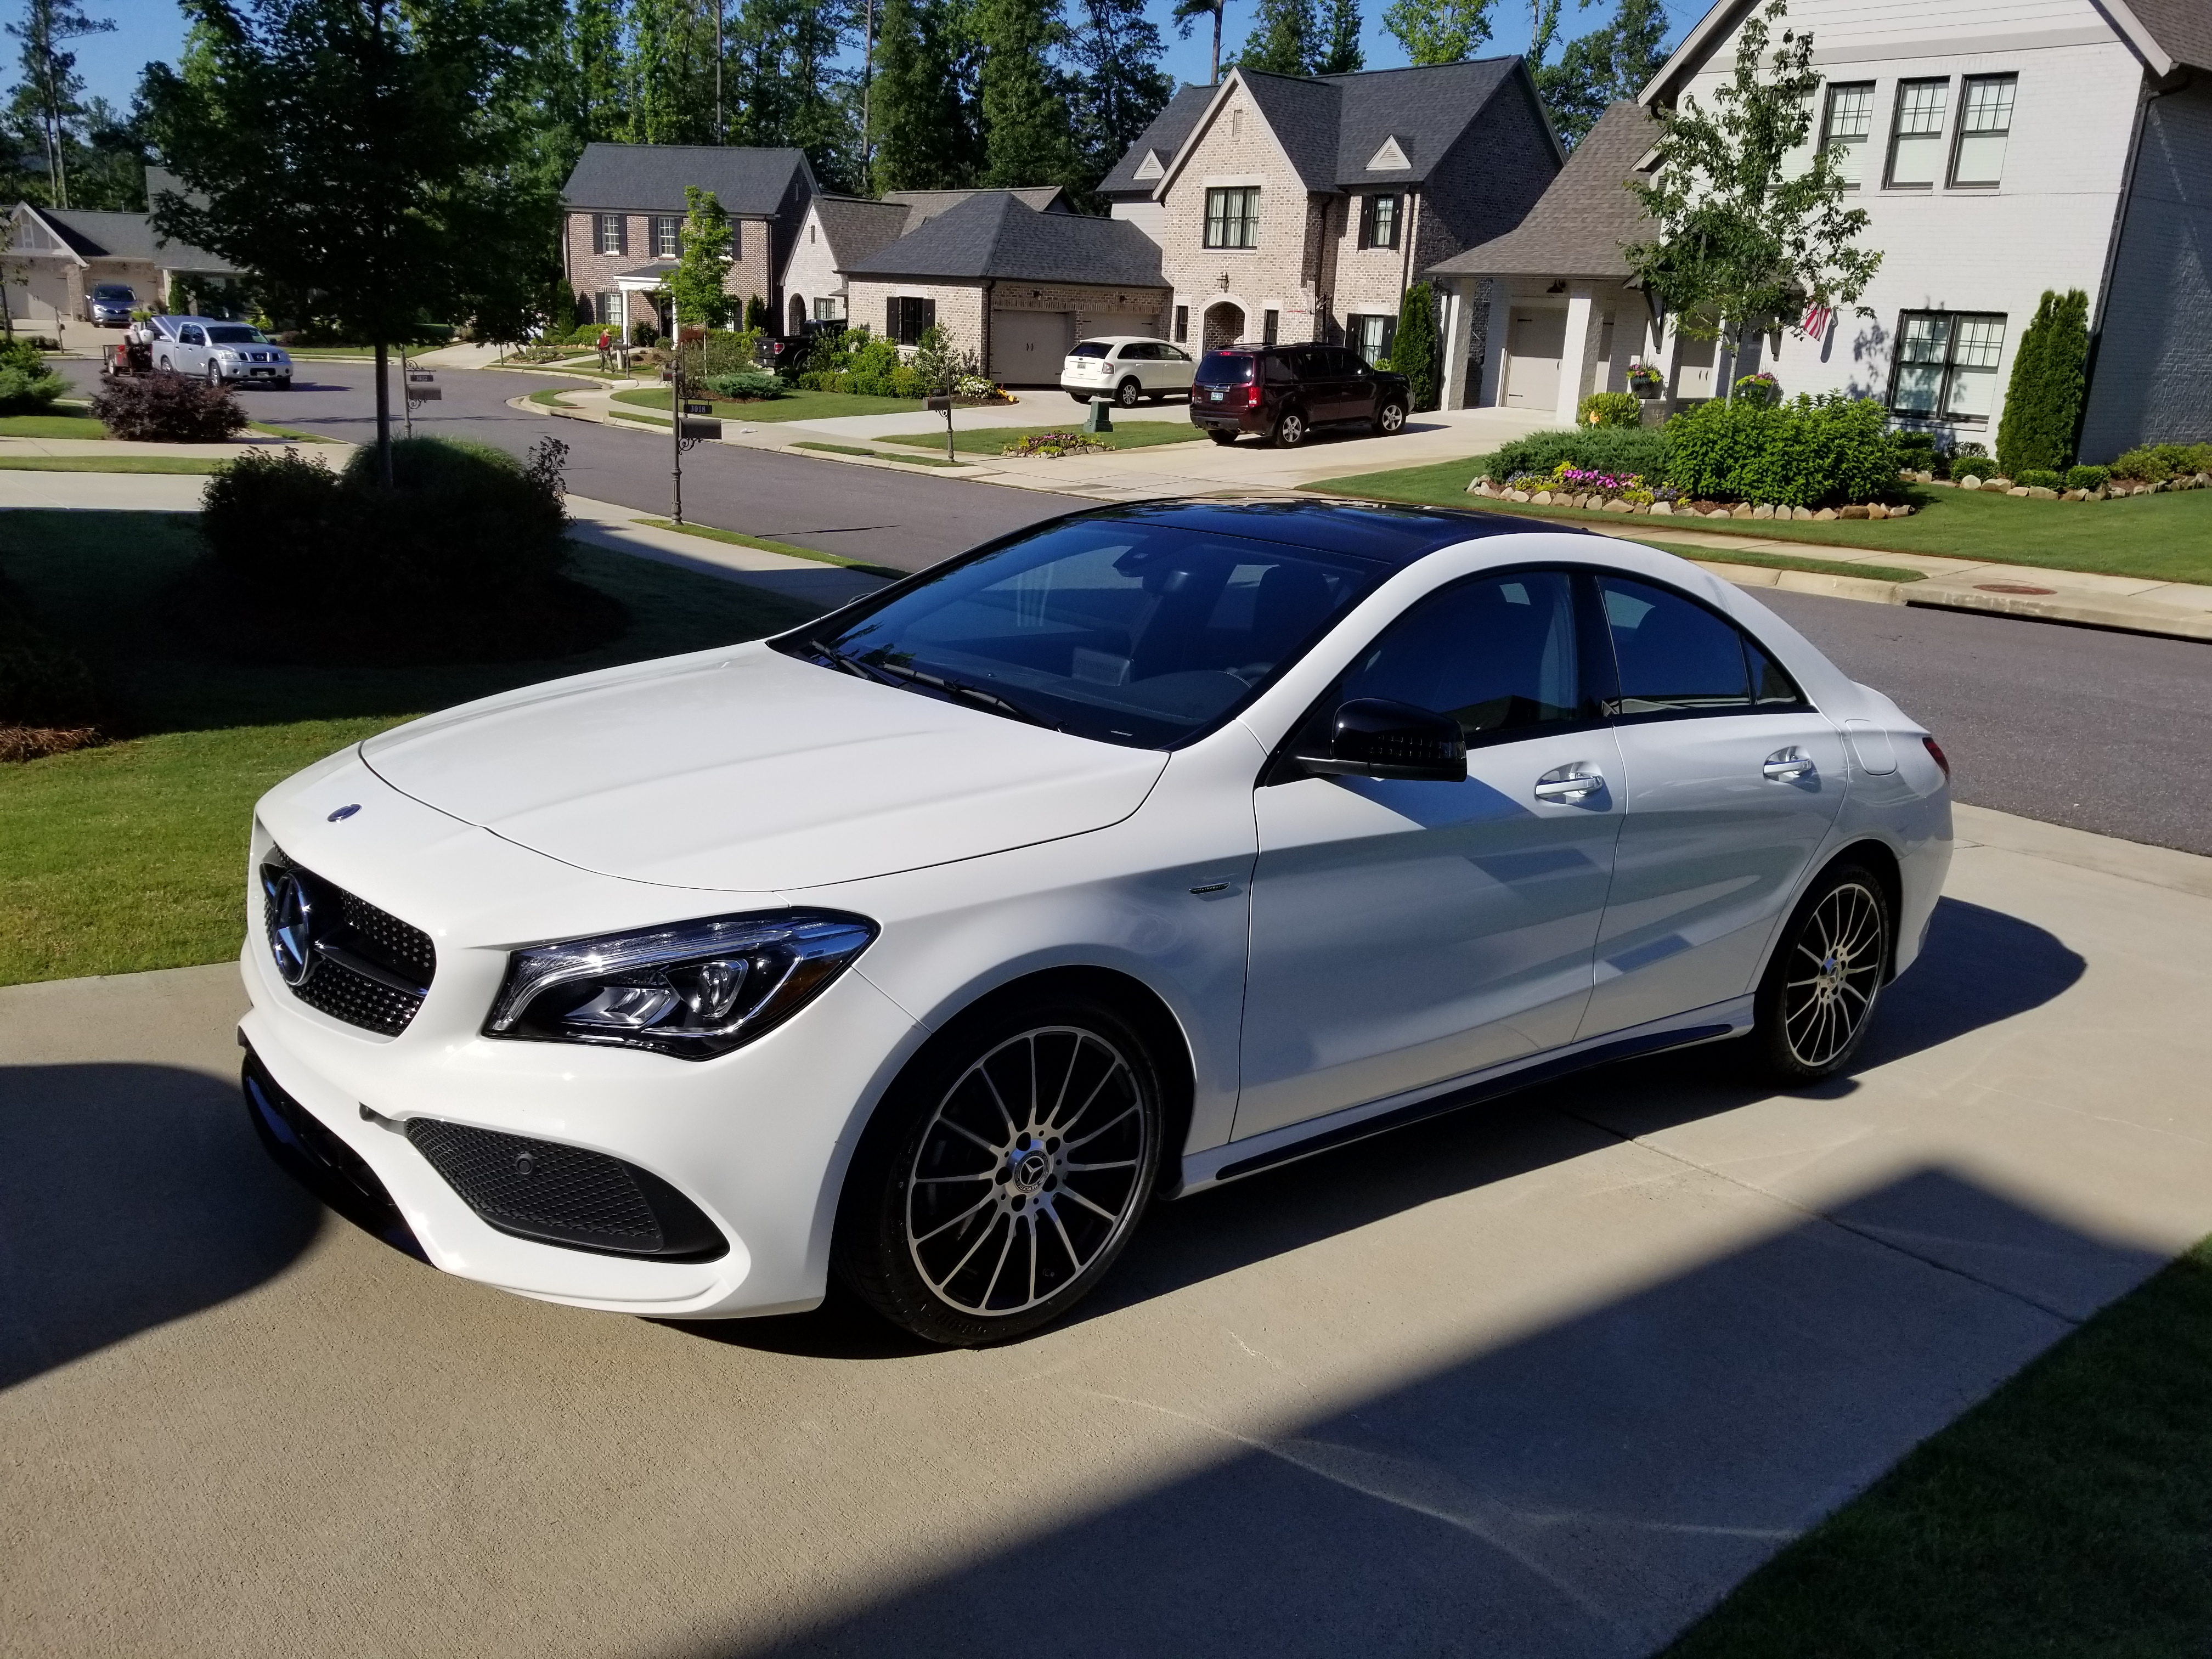 2018 Mercedes Benz Cla 250 >> 2018 CLA 250 ICE Edition - LIMITED EDITION 1 of 400